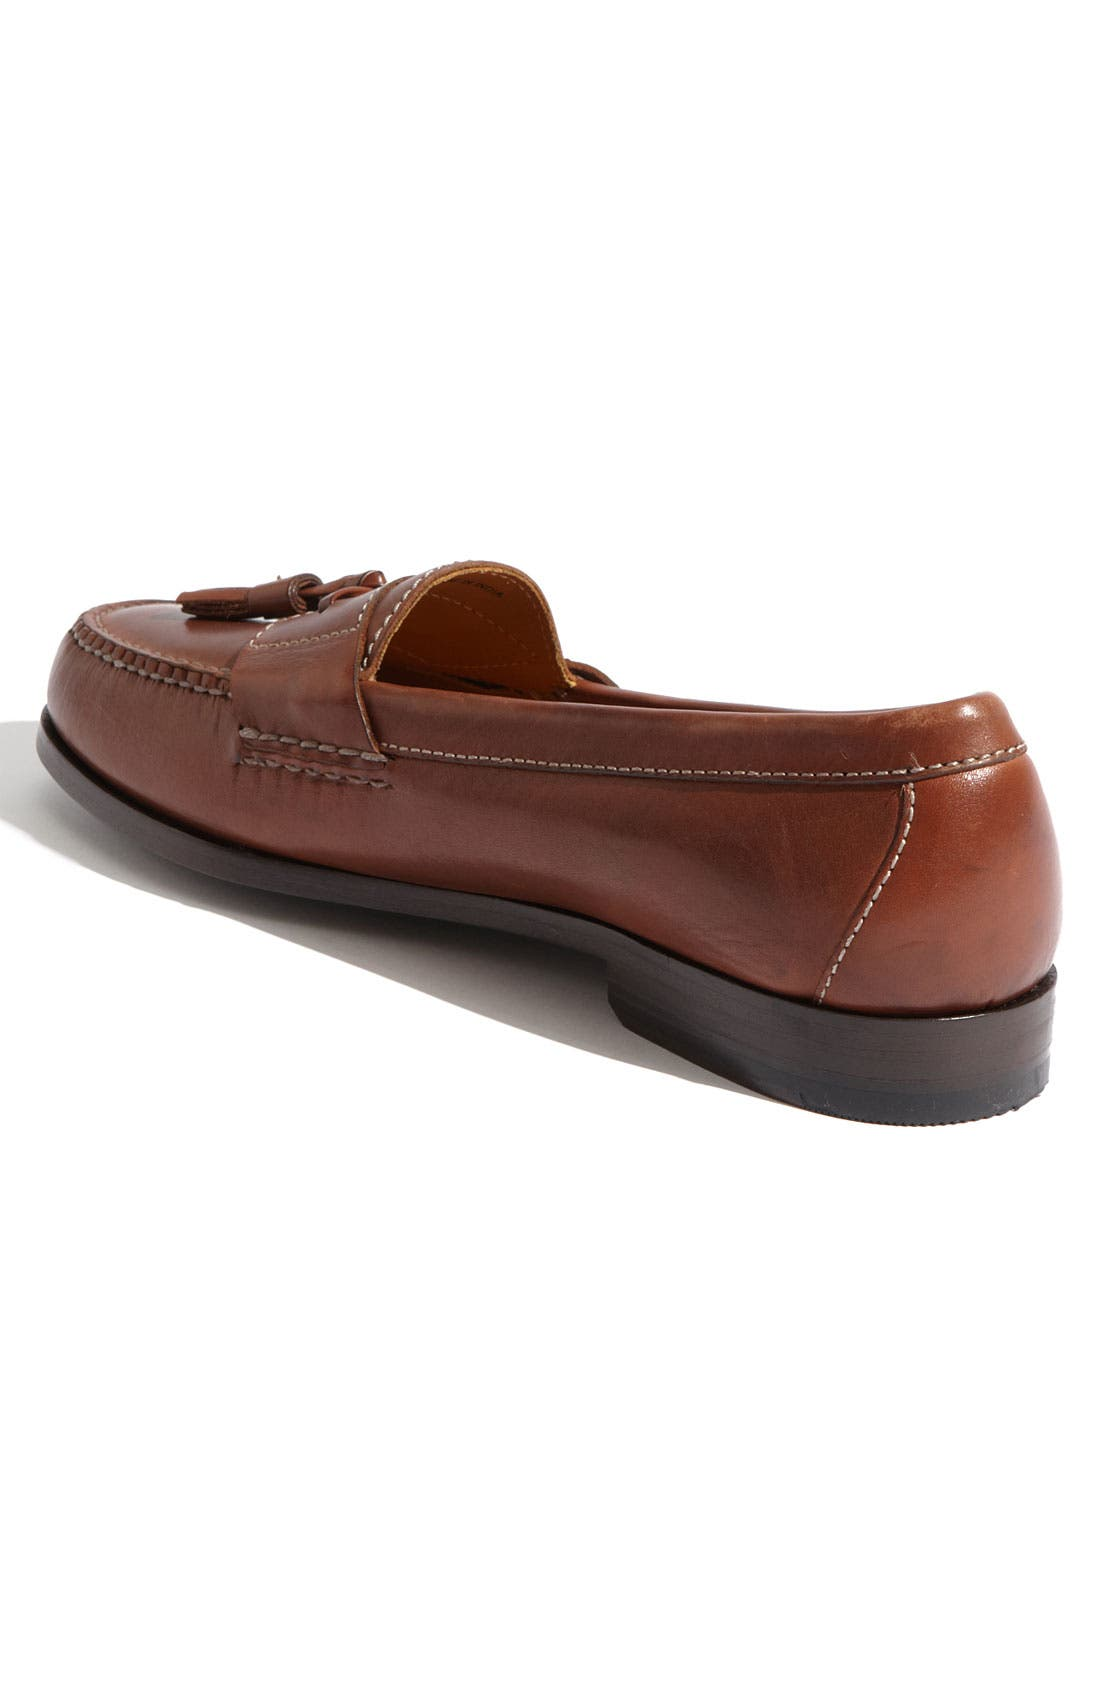 Alternate Image 2  - Cole Haan 'Pinch Tassel' Loafer (Online Only)   (Men)